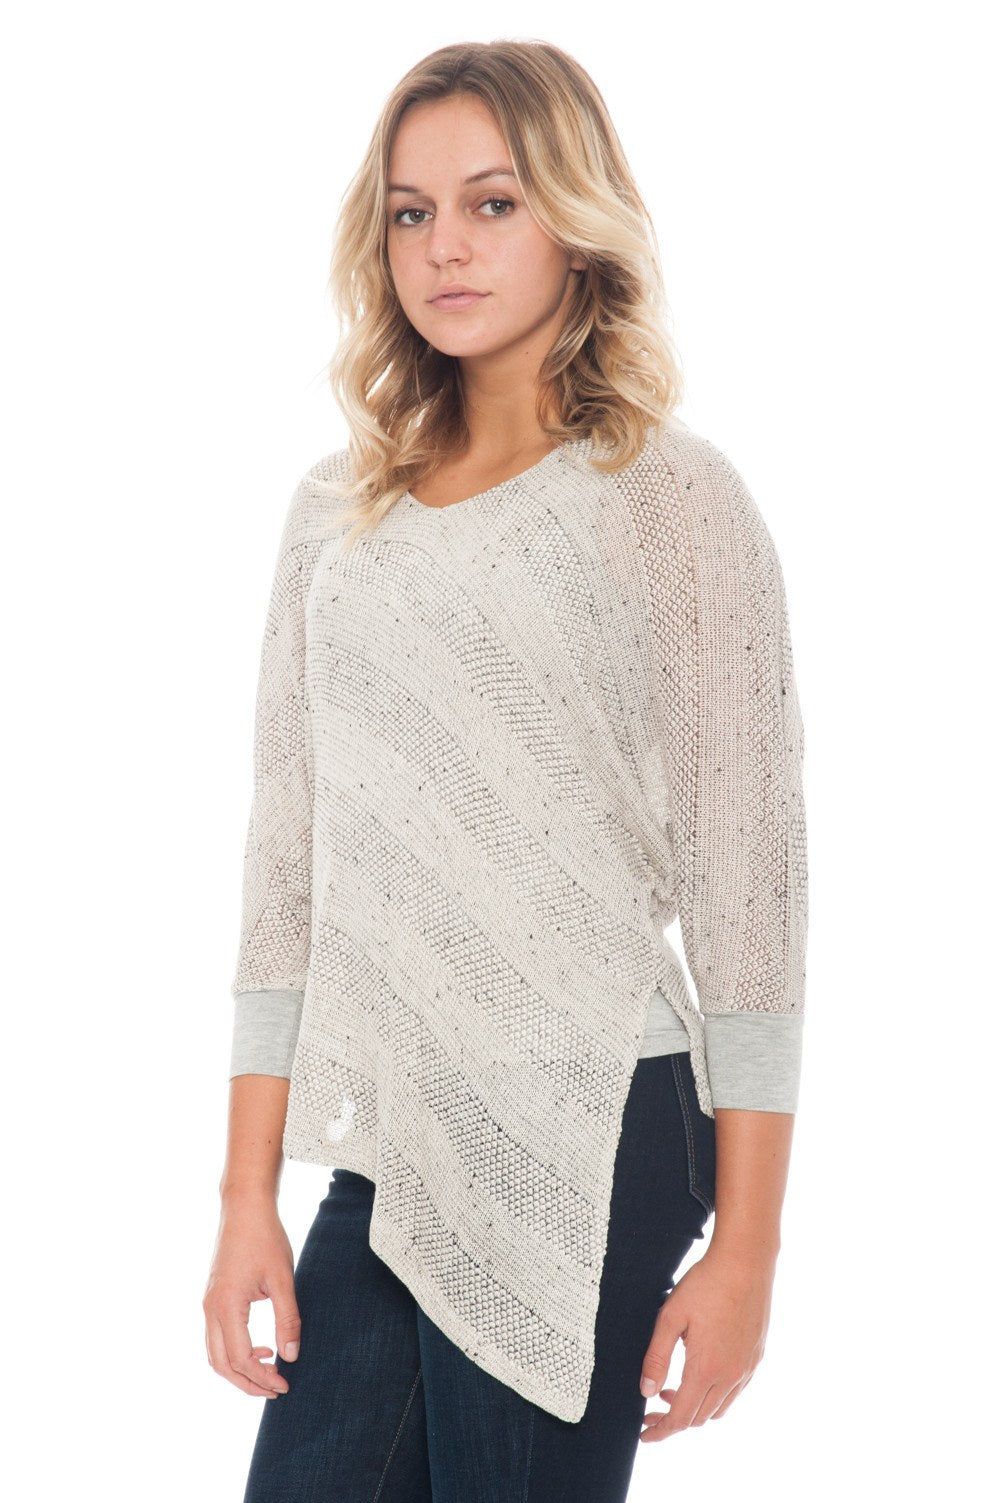 Blouse - Knit with Asymmetrical Hem - 1